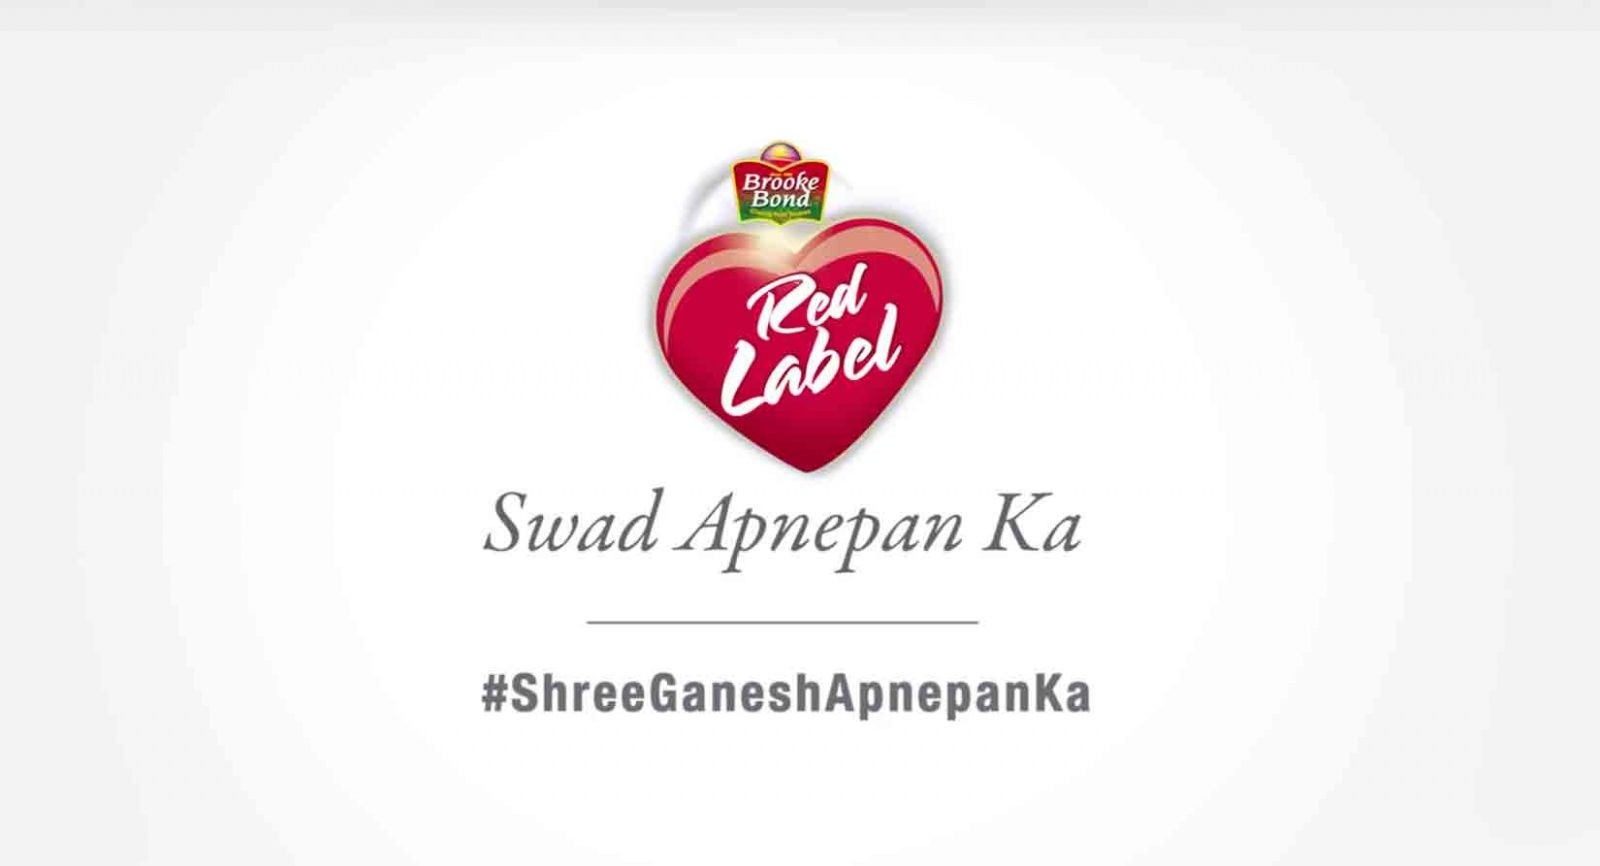 ShreeGaneshApnepanKa - A thought-provoking campaign by Red